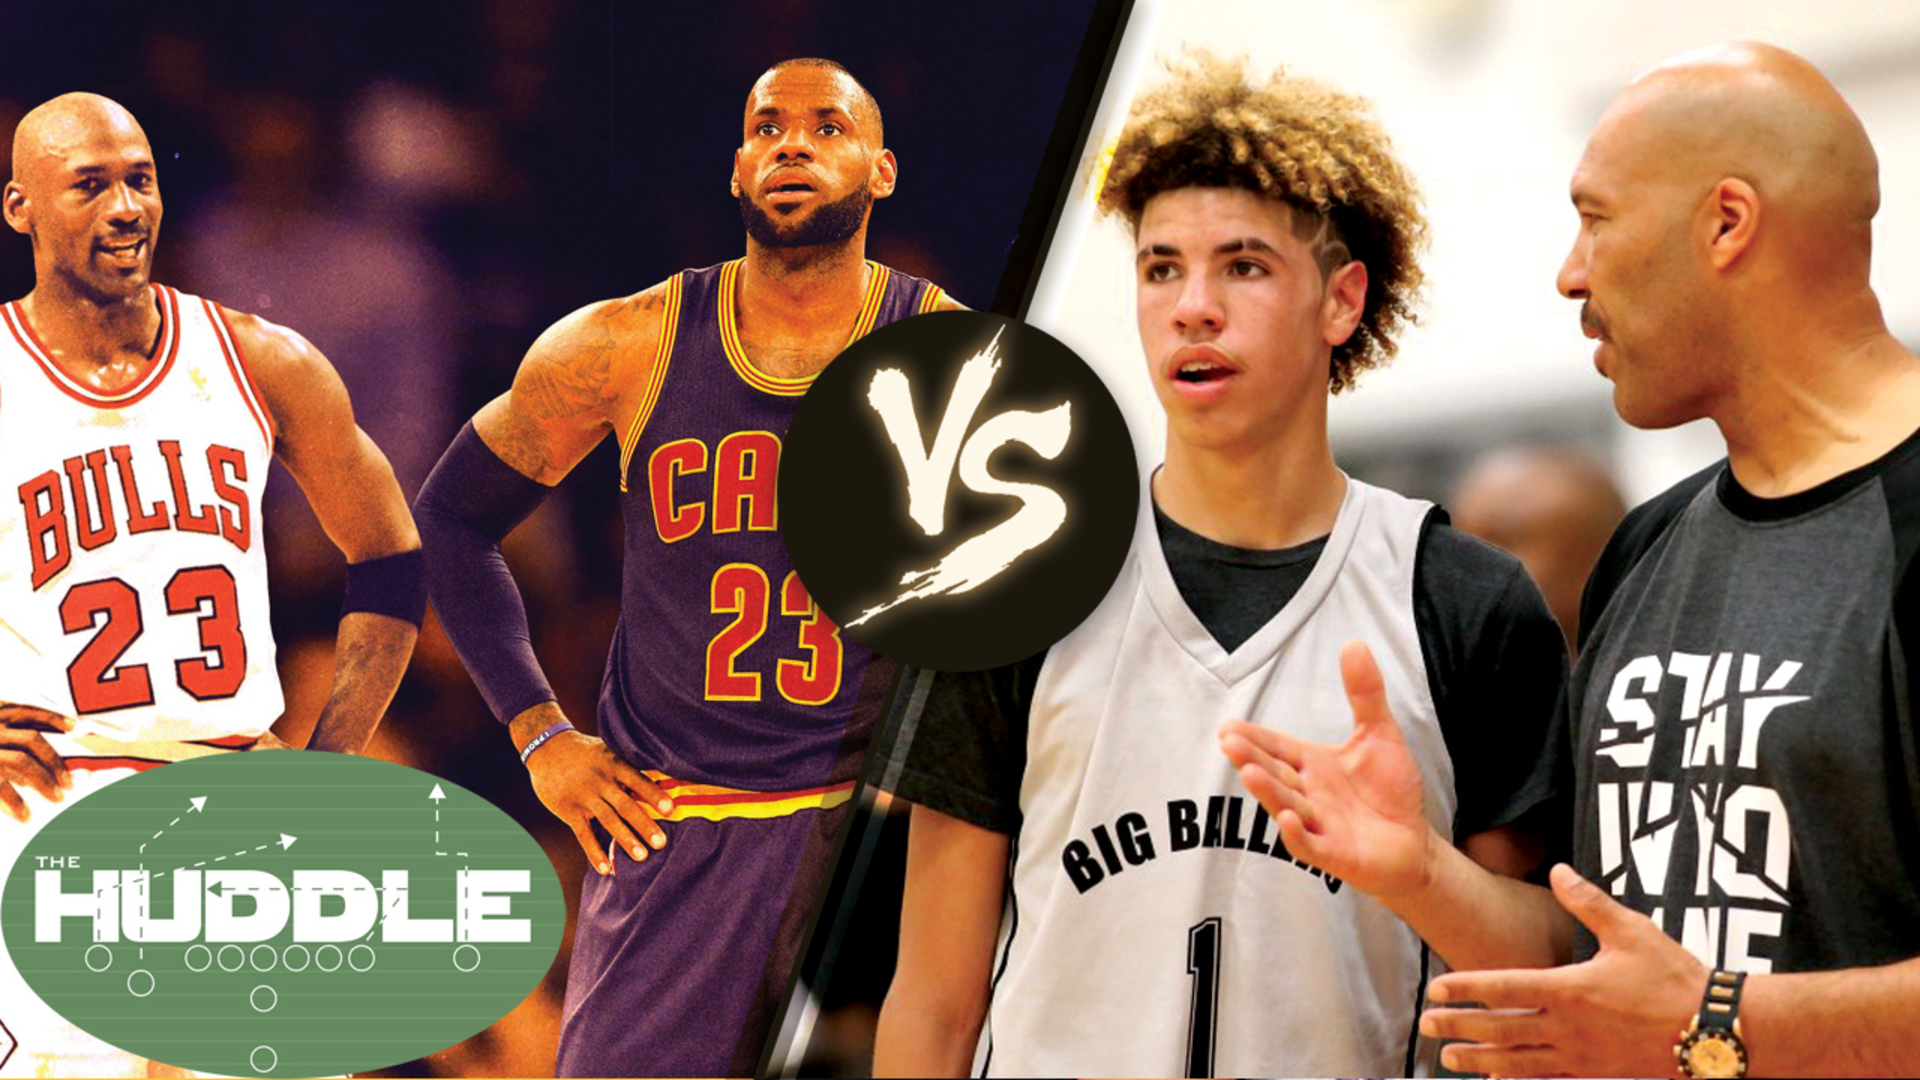 LaVar Ball Says He & Son LaMelo Could BEAT LeBron James & Michael Jordan 2-on-2 -The Huddle